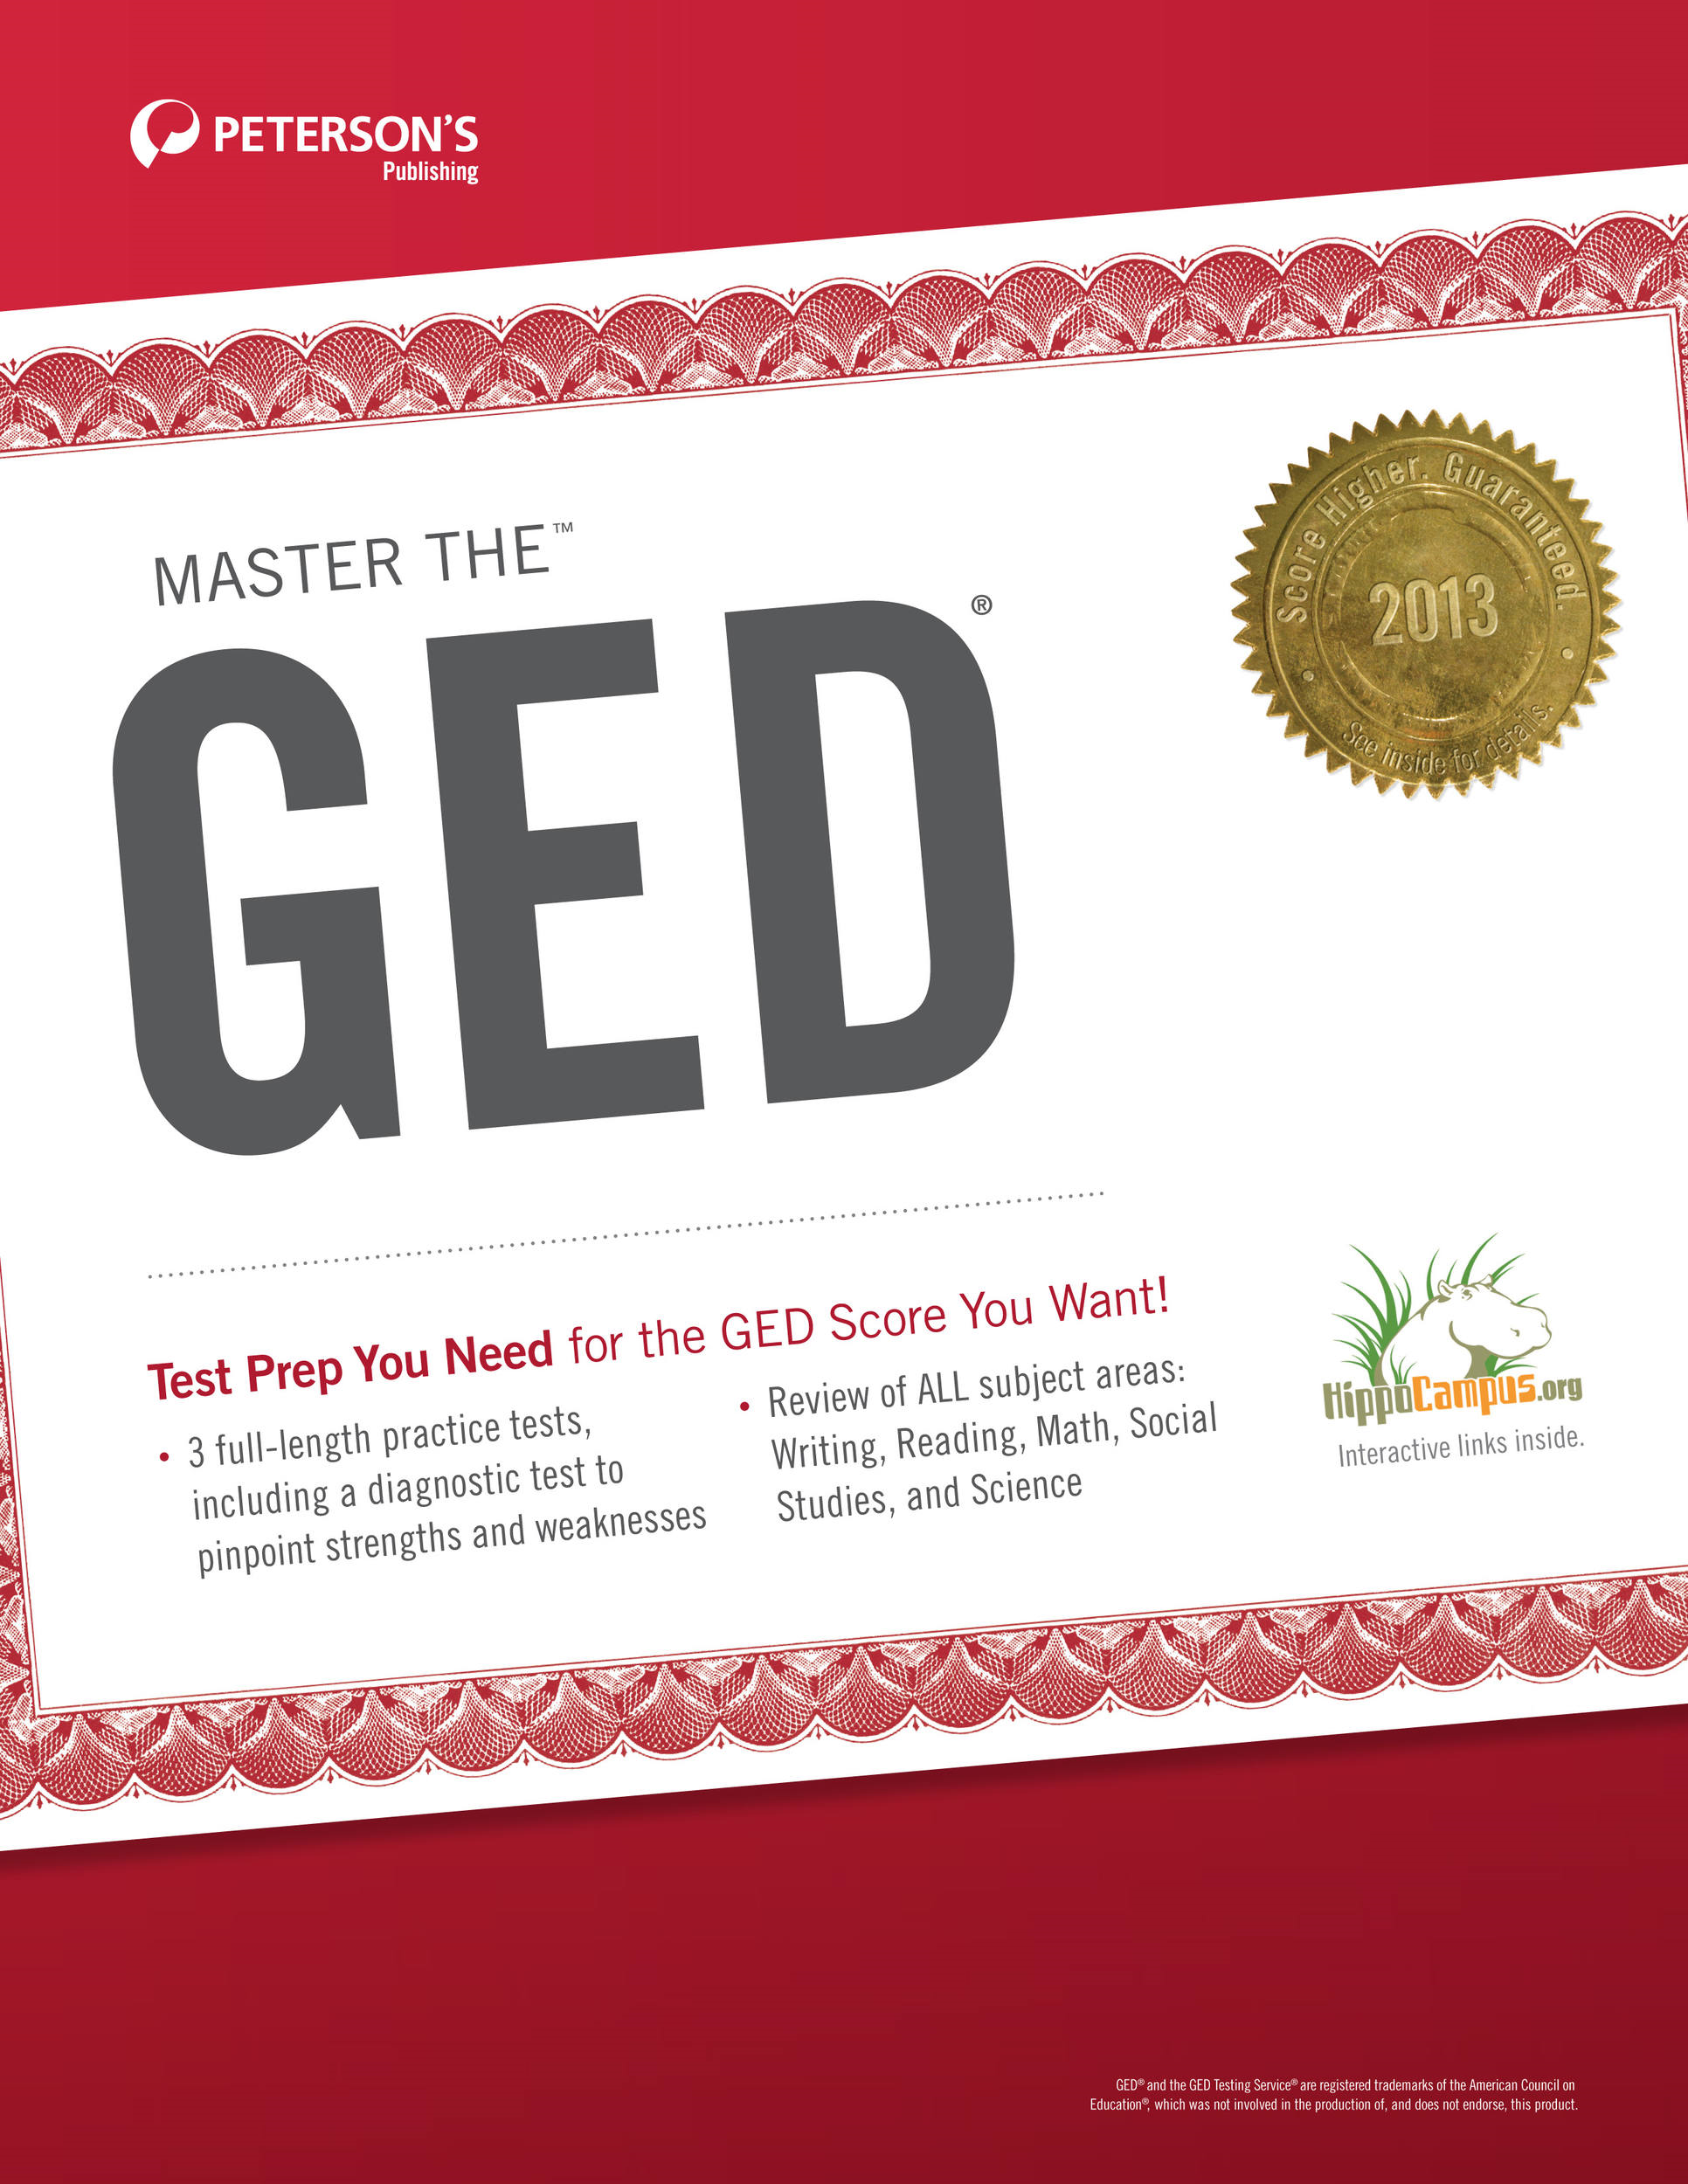 Master the GED: The Mathematics Test